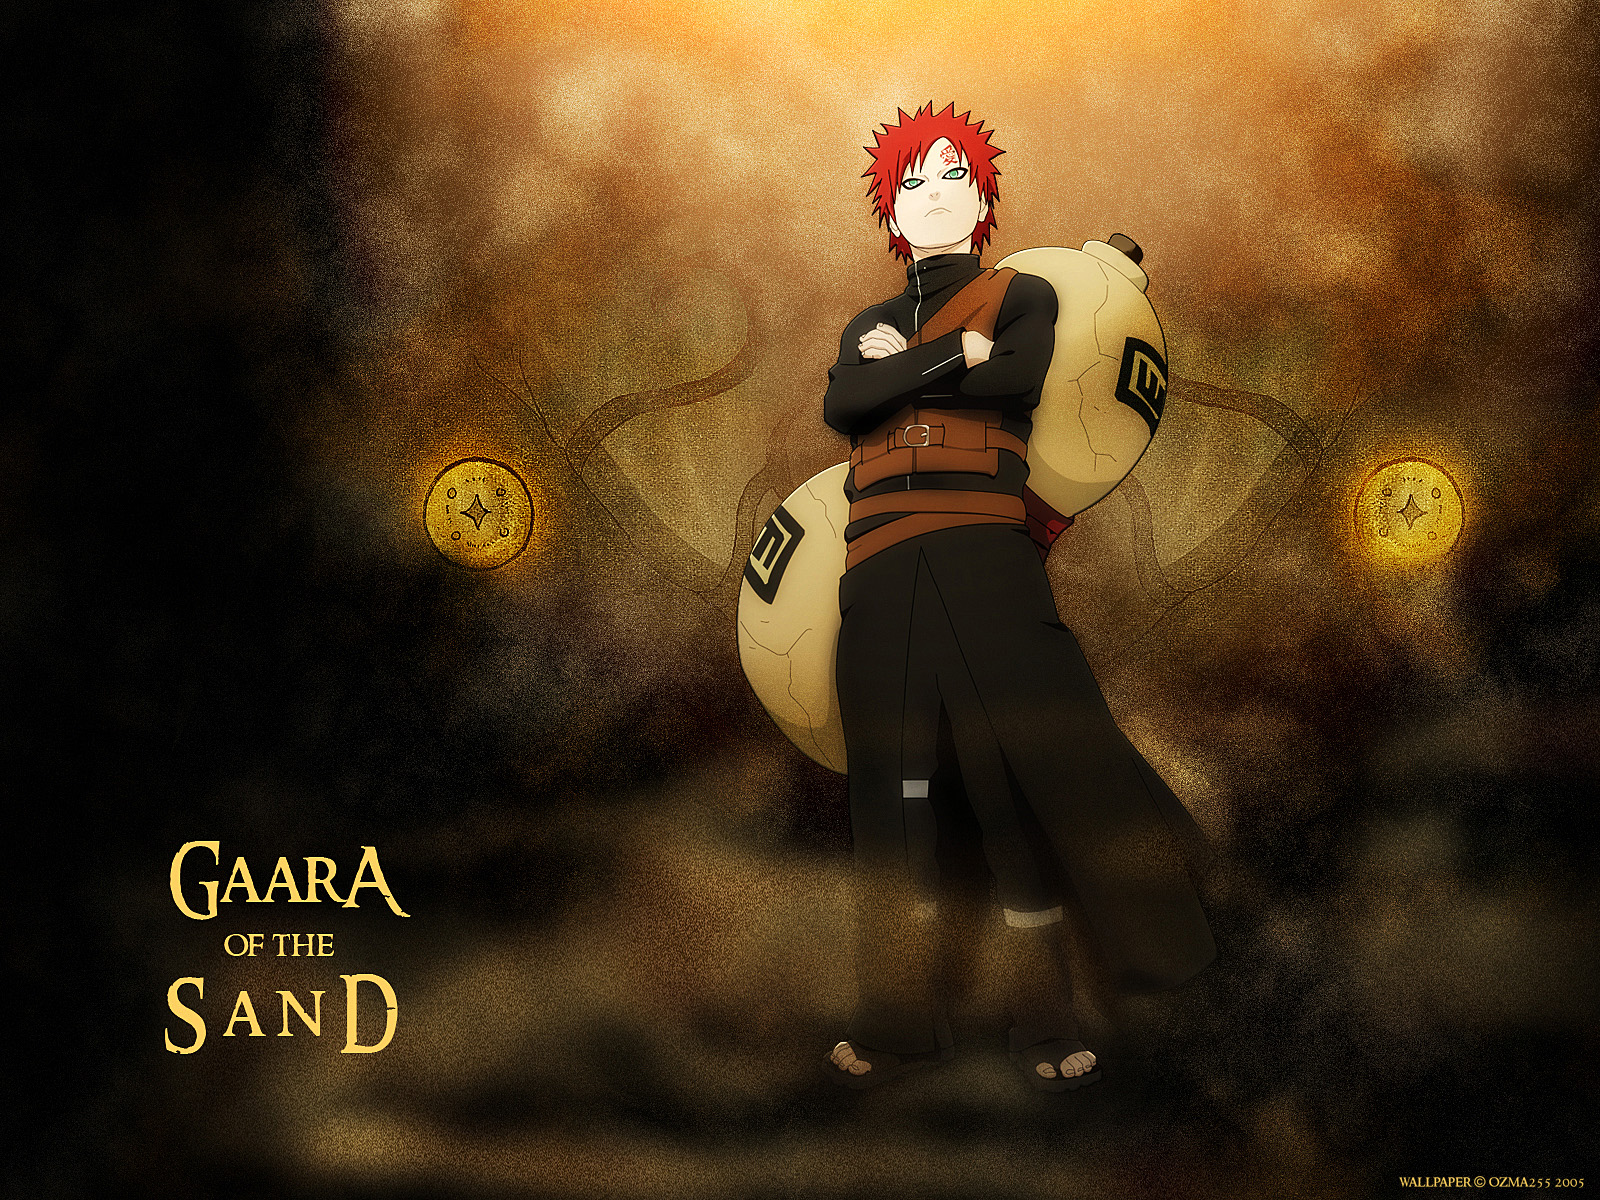 Download Anime Wallpaper Gaara HD Naruto Movie 1600x1200